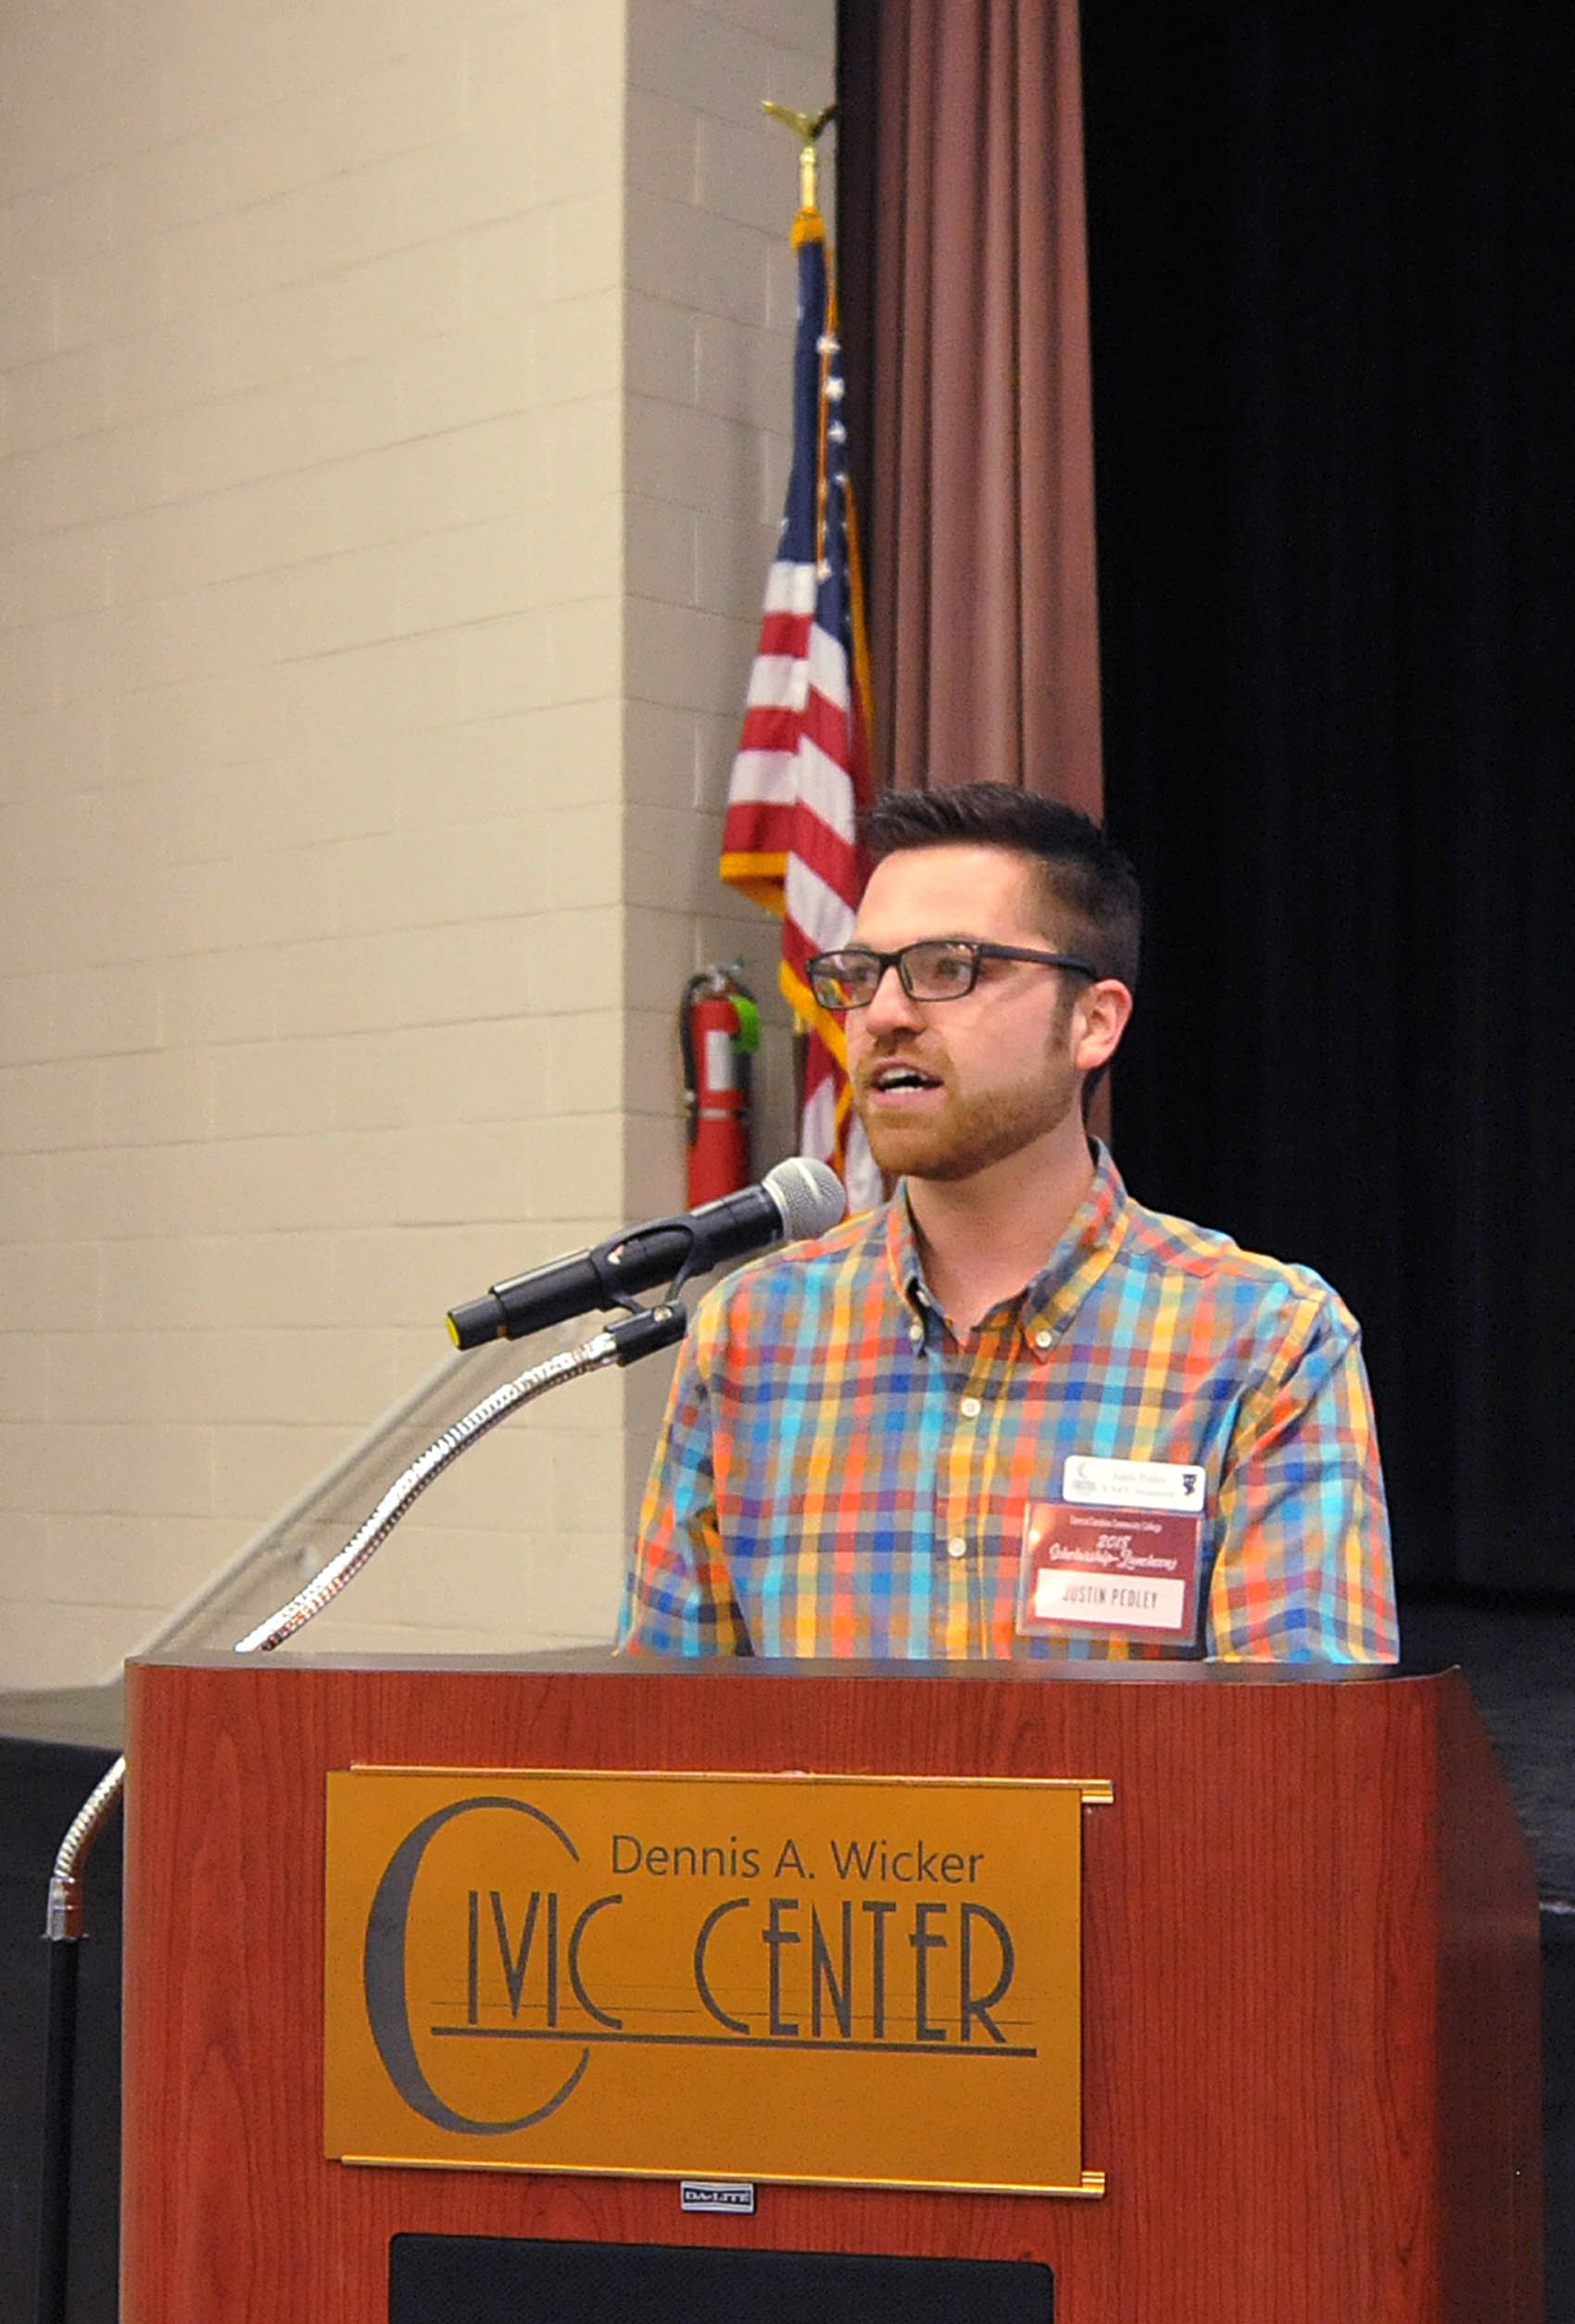 Click to enlarge,  Justin Pedley, a Veterinary Medical Technology student, was the student speaker at the Central Carolina Community College Foundation Scholarship Luncheon on Wednesday, Nov. 14, at the Dennis A. Wicker Civic & Conference Center.